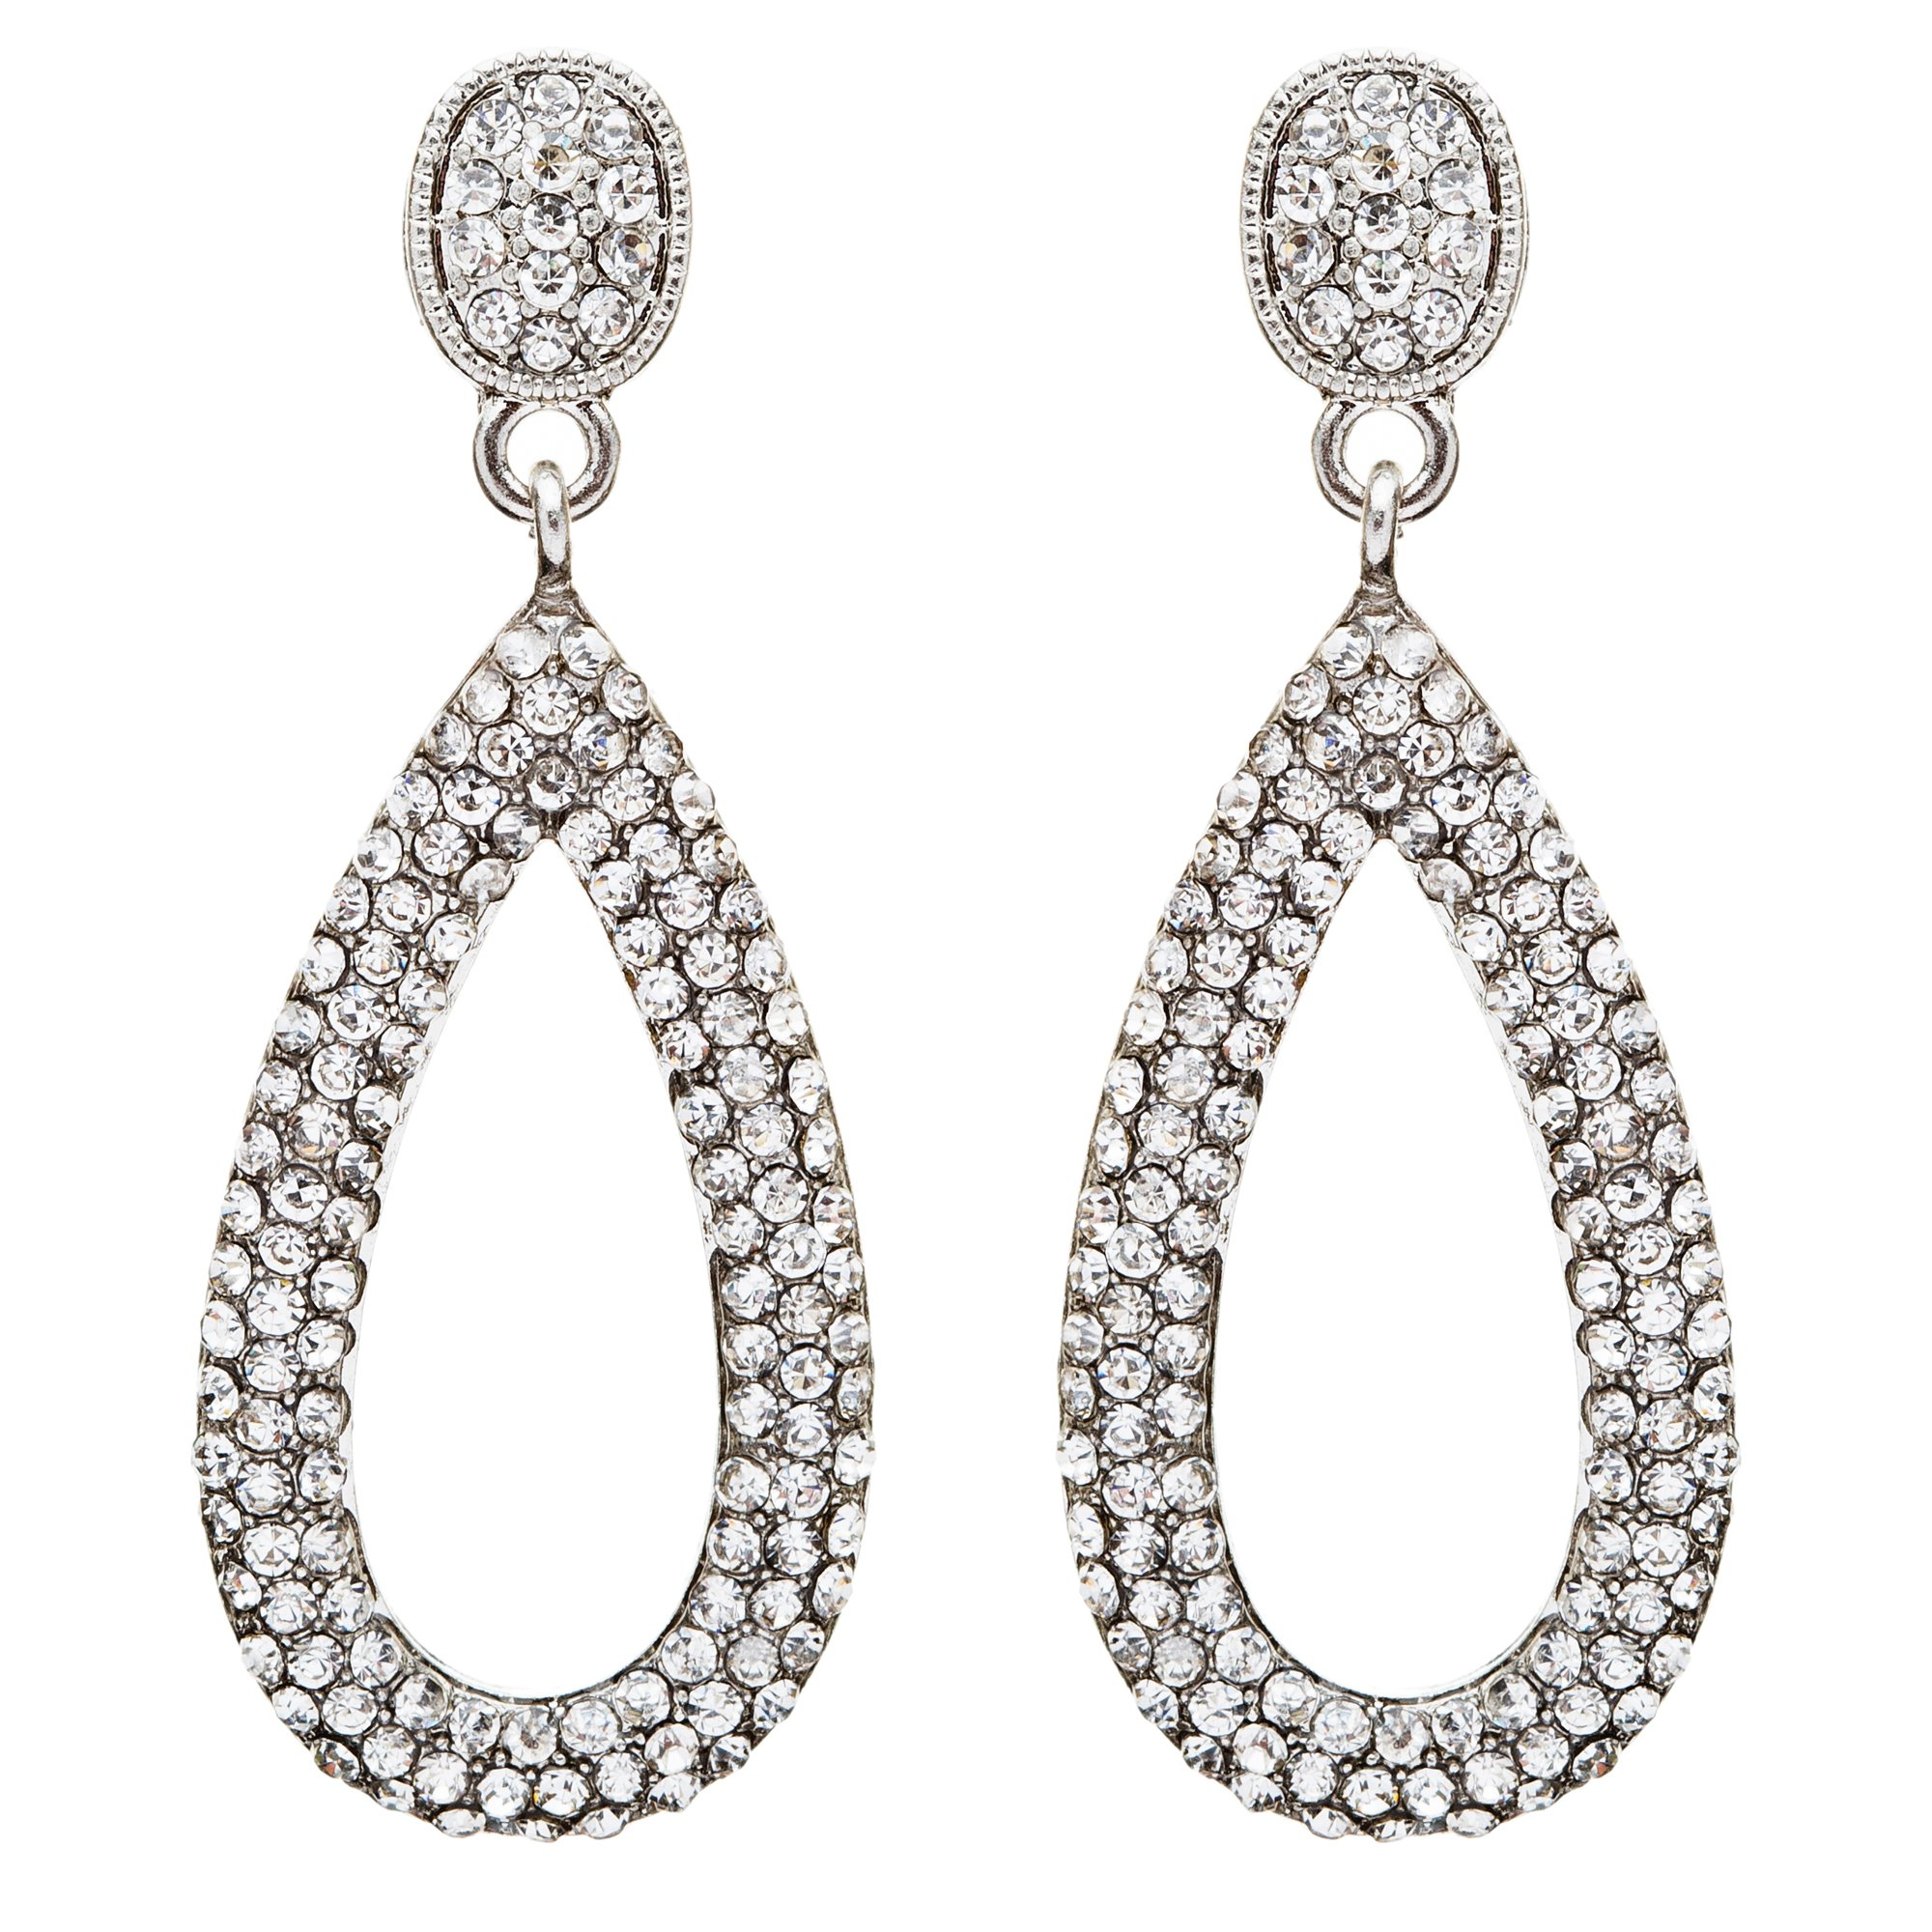 Bridal Wedding Jewelry Crystal Rhinestone Charming Tear Drop Earrings E735Silver